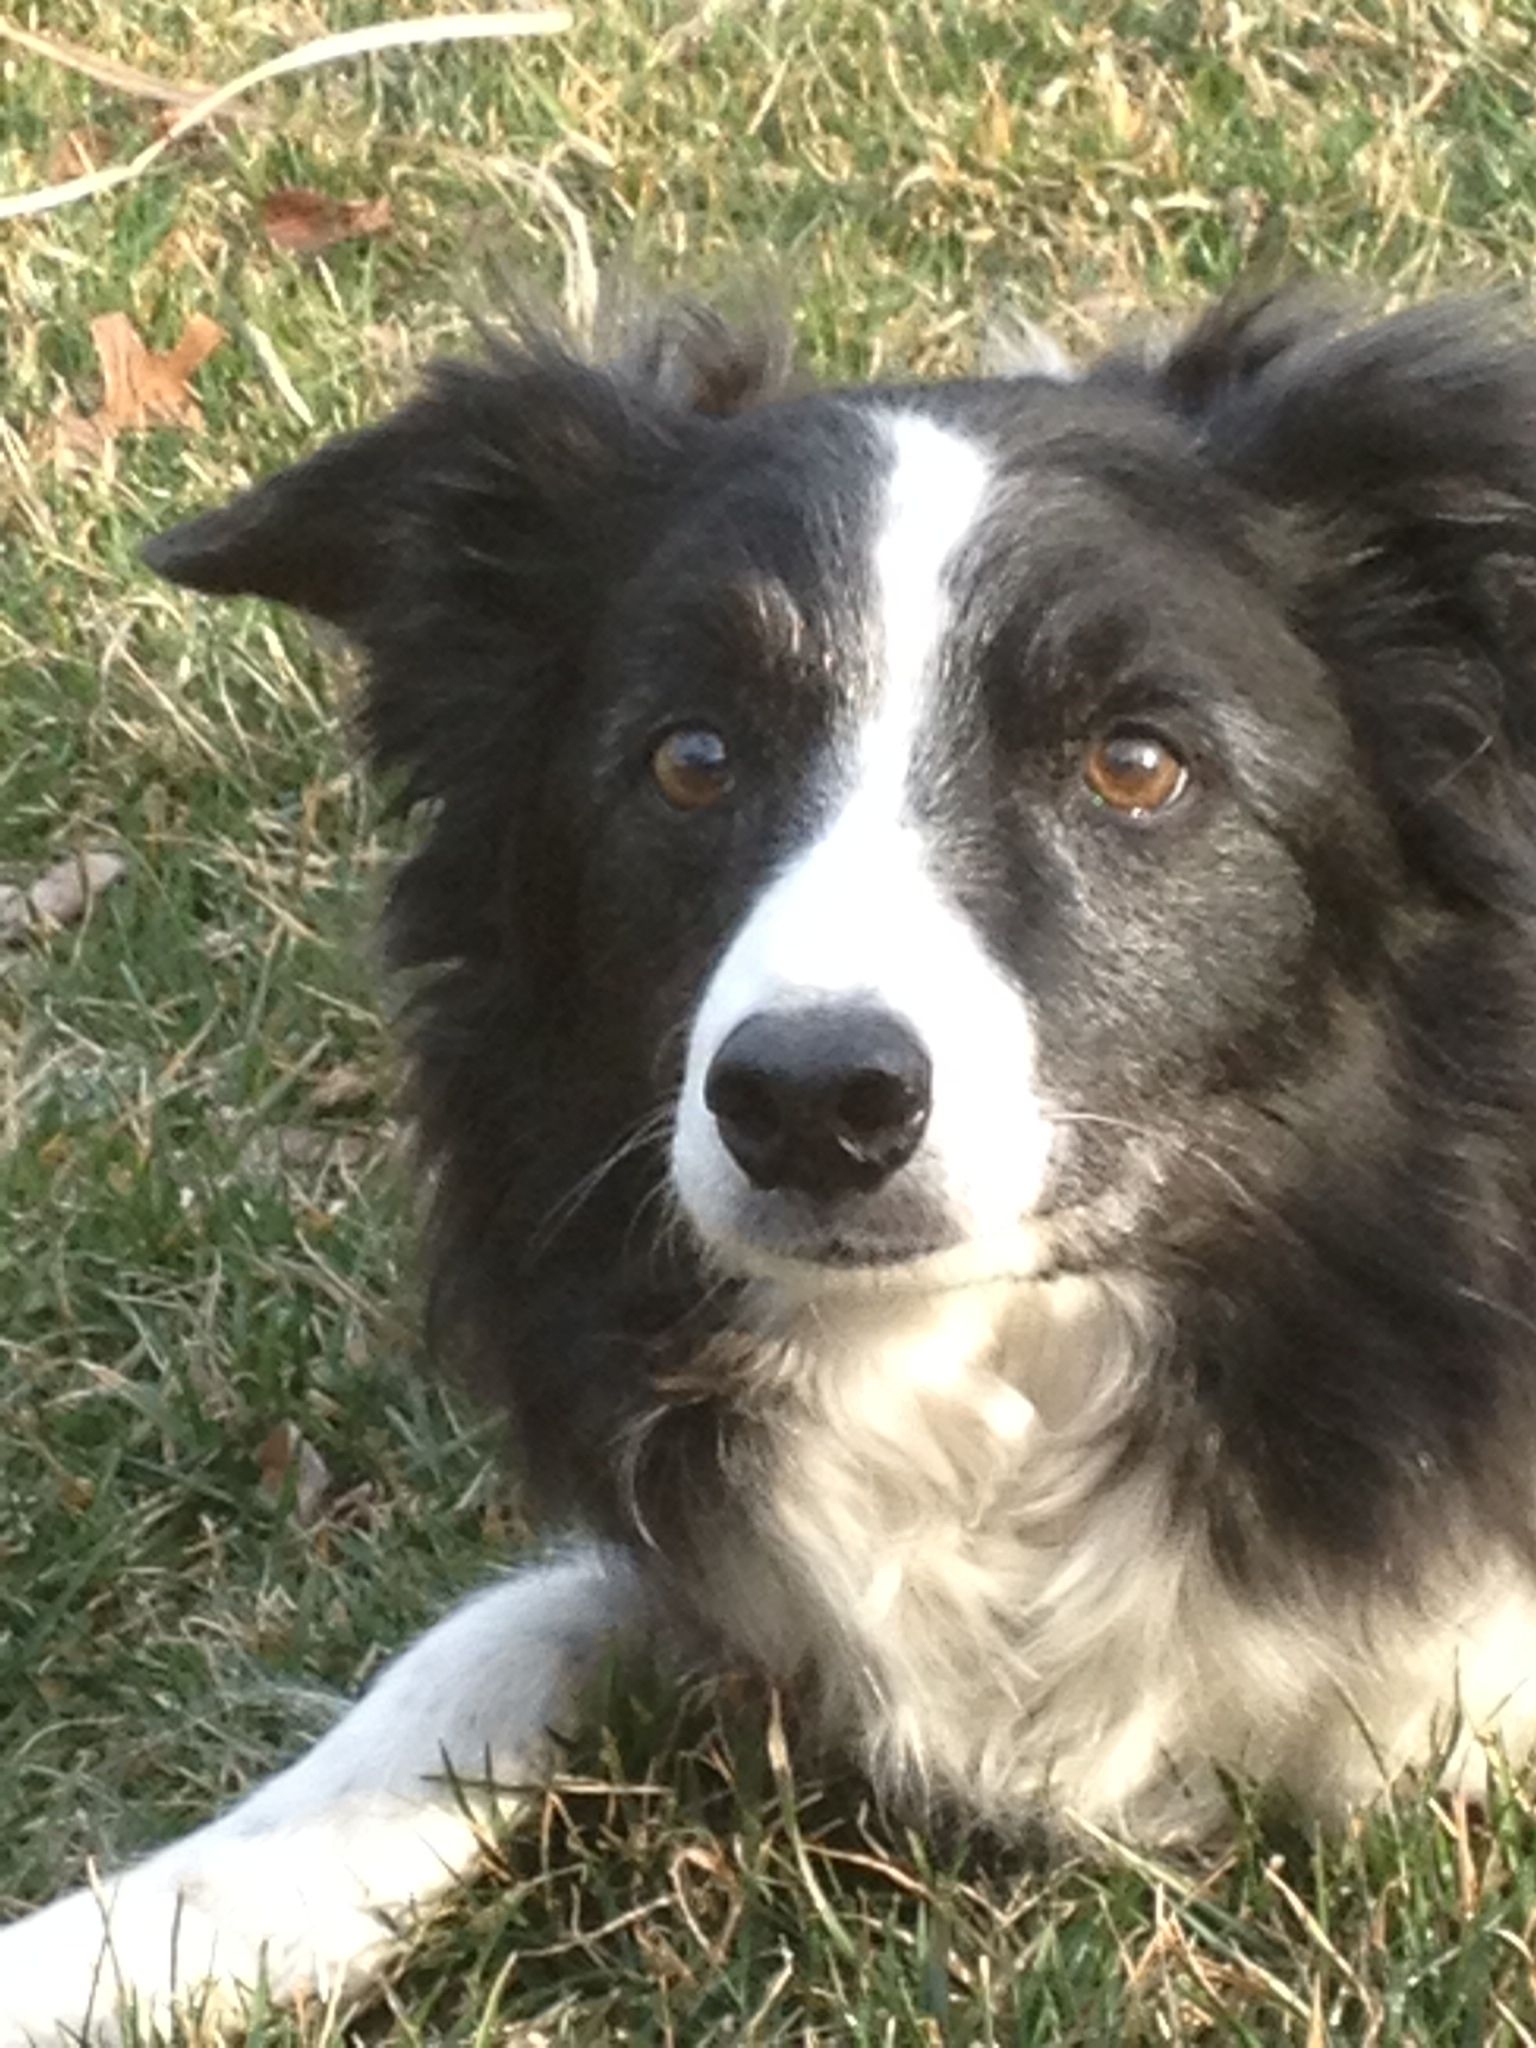 Crosley The Matriarch She Was The Crosmonaut Yes Best Dog Ever She Was 14 In This Photo Border Collie Dogs Collie